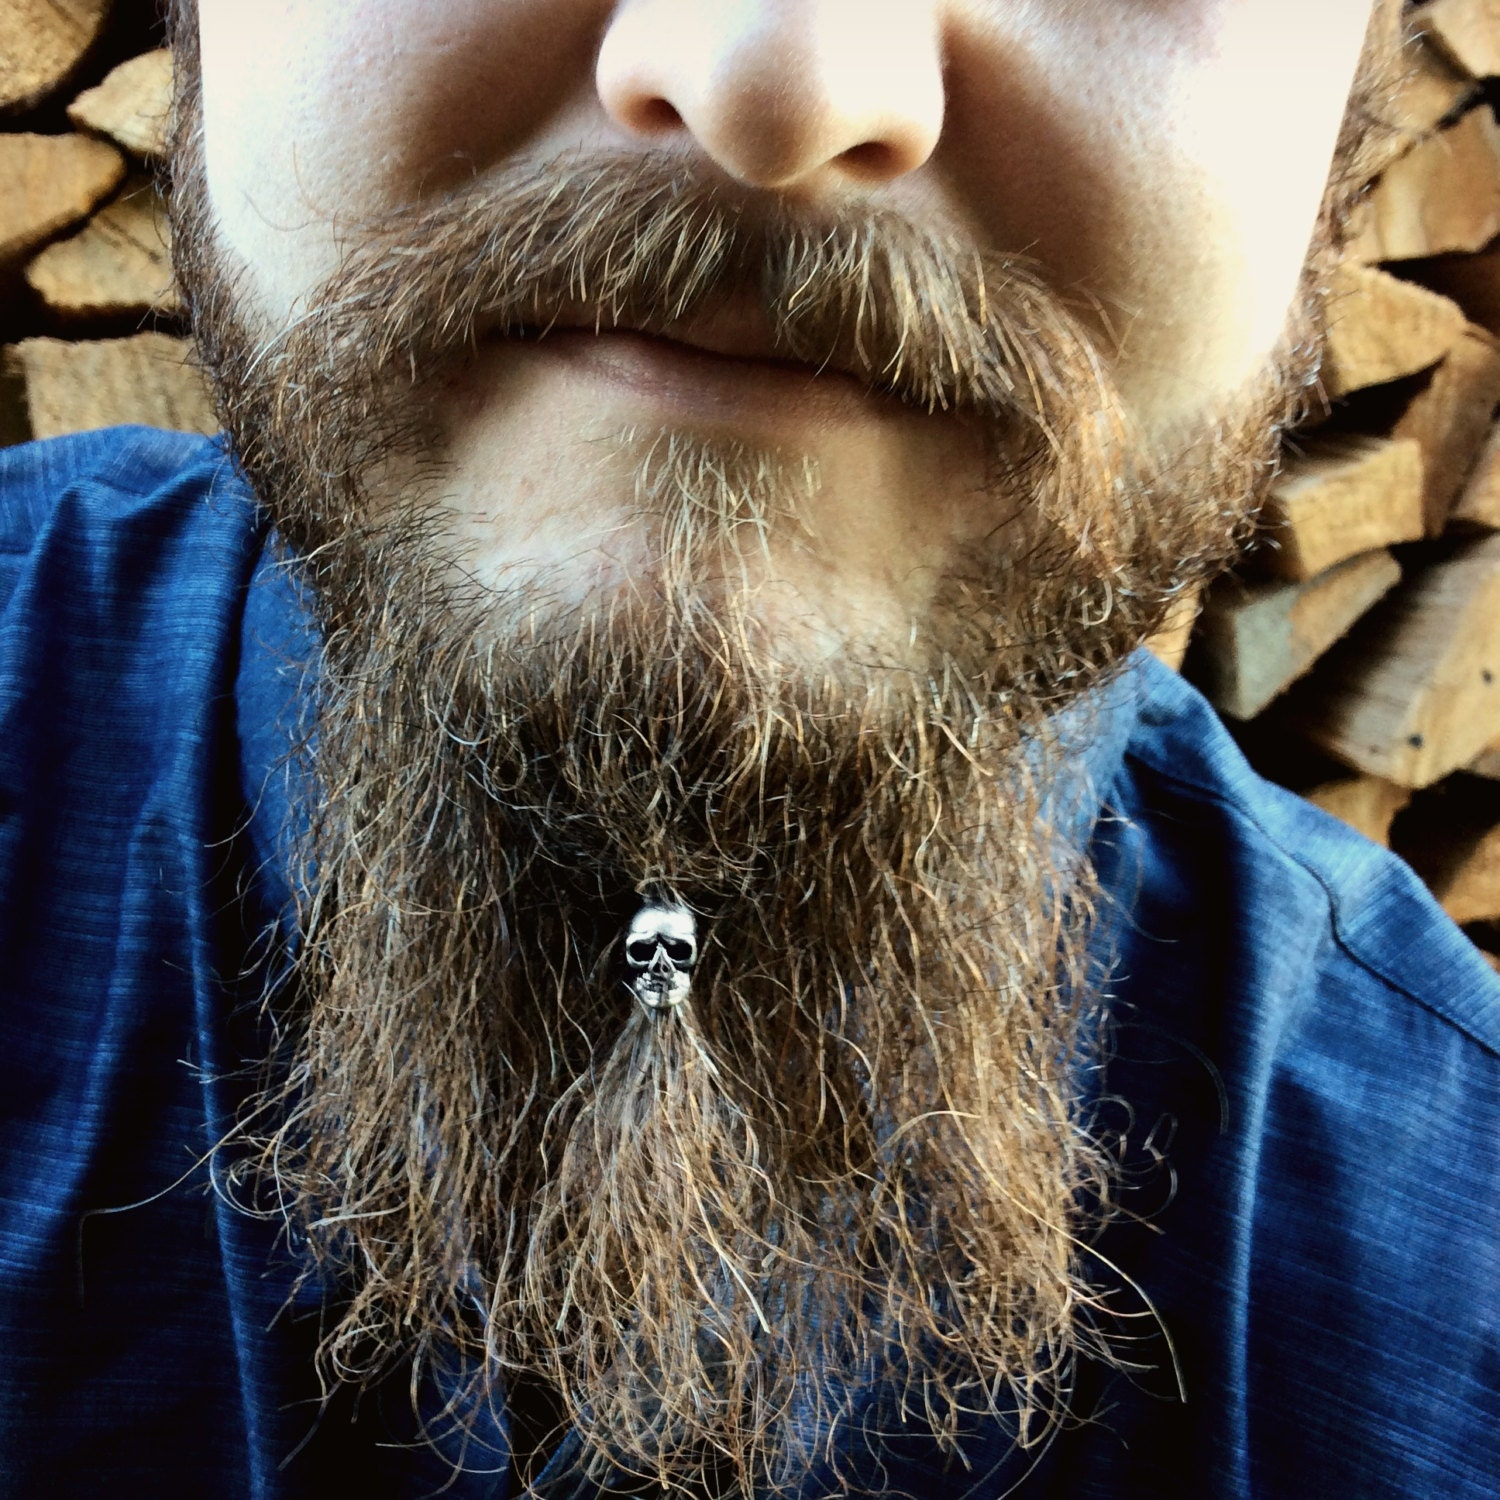 Beard Bead Kit 'Shrunken Head' STAINLESS STEEL beard rings ...